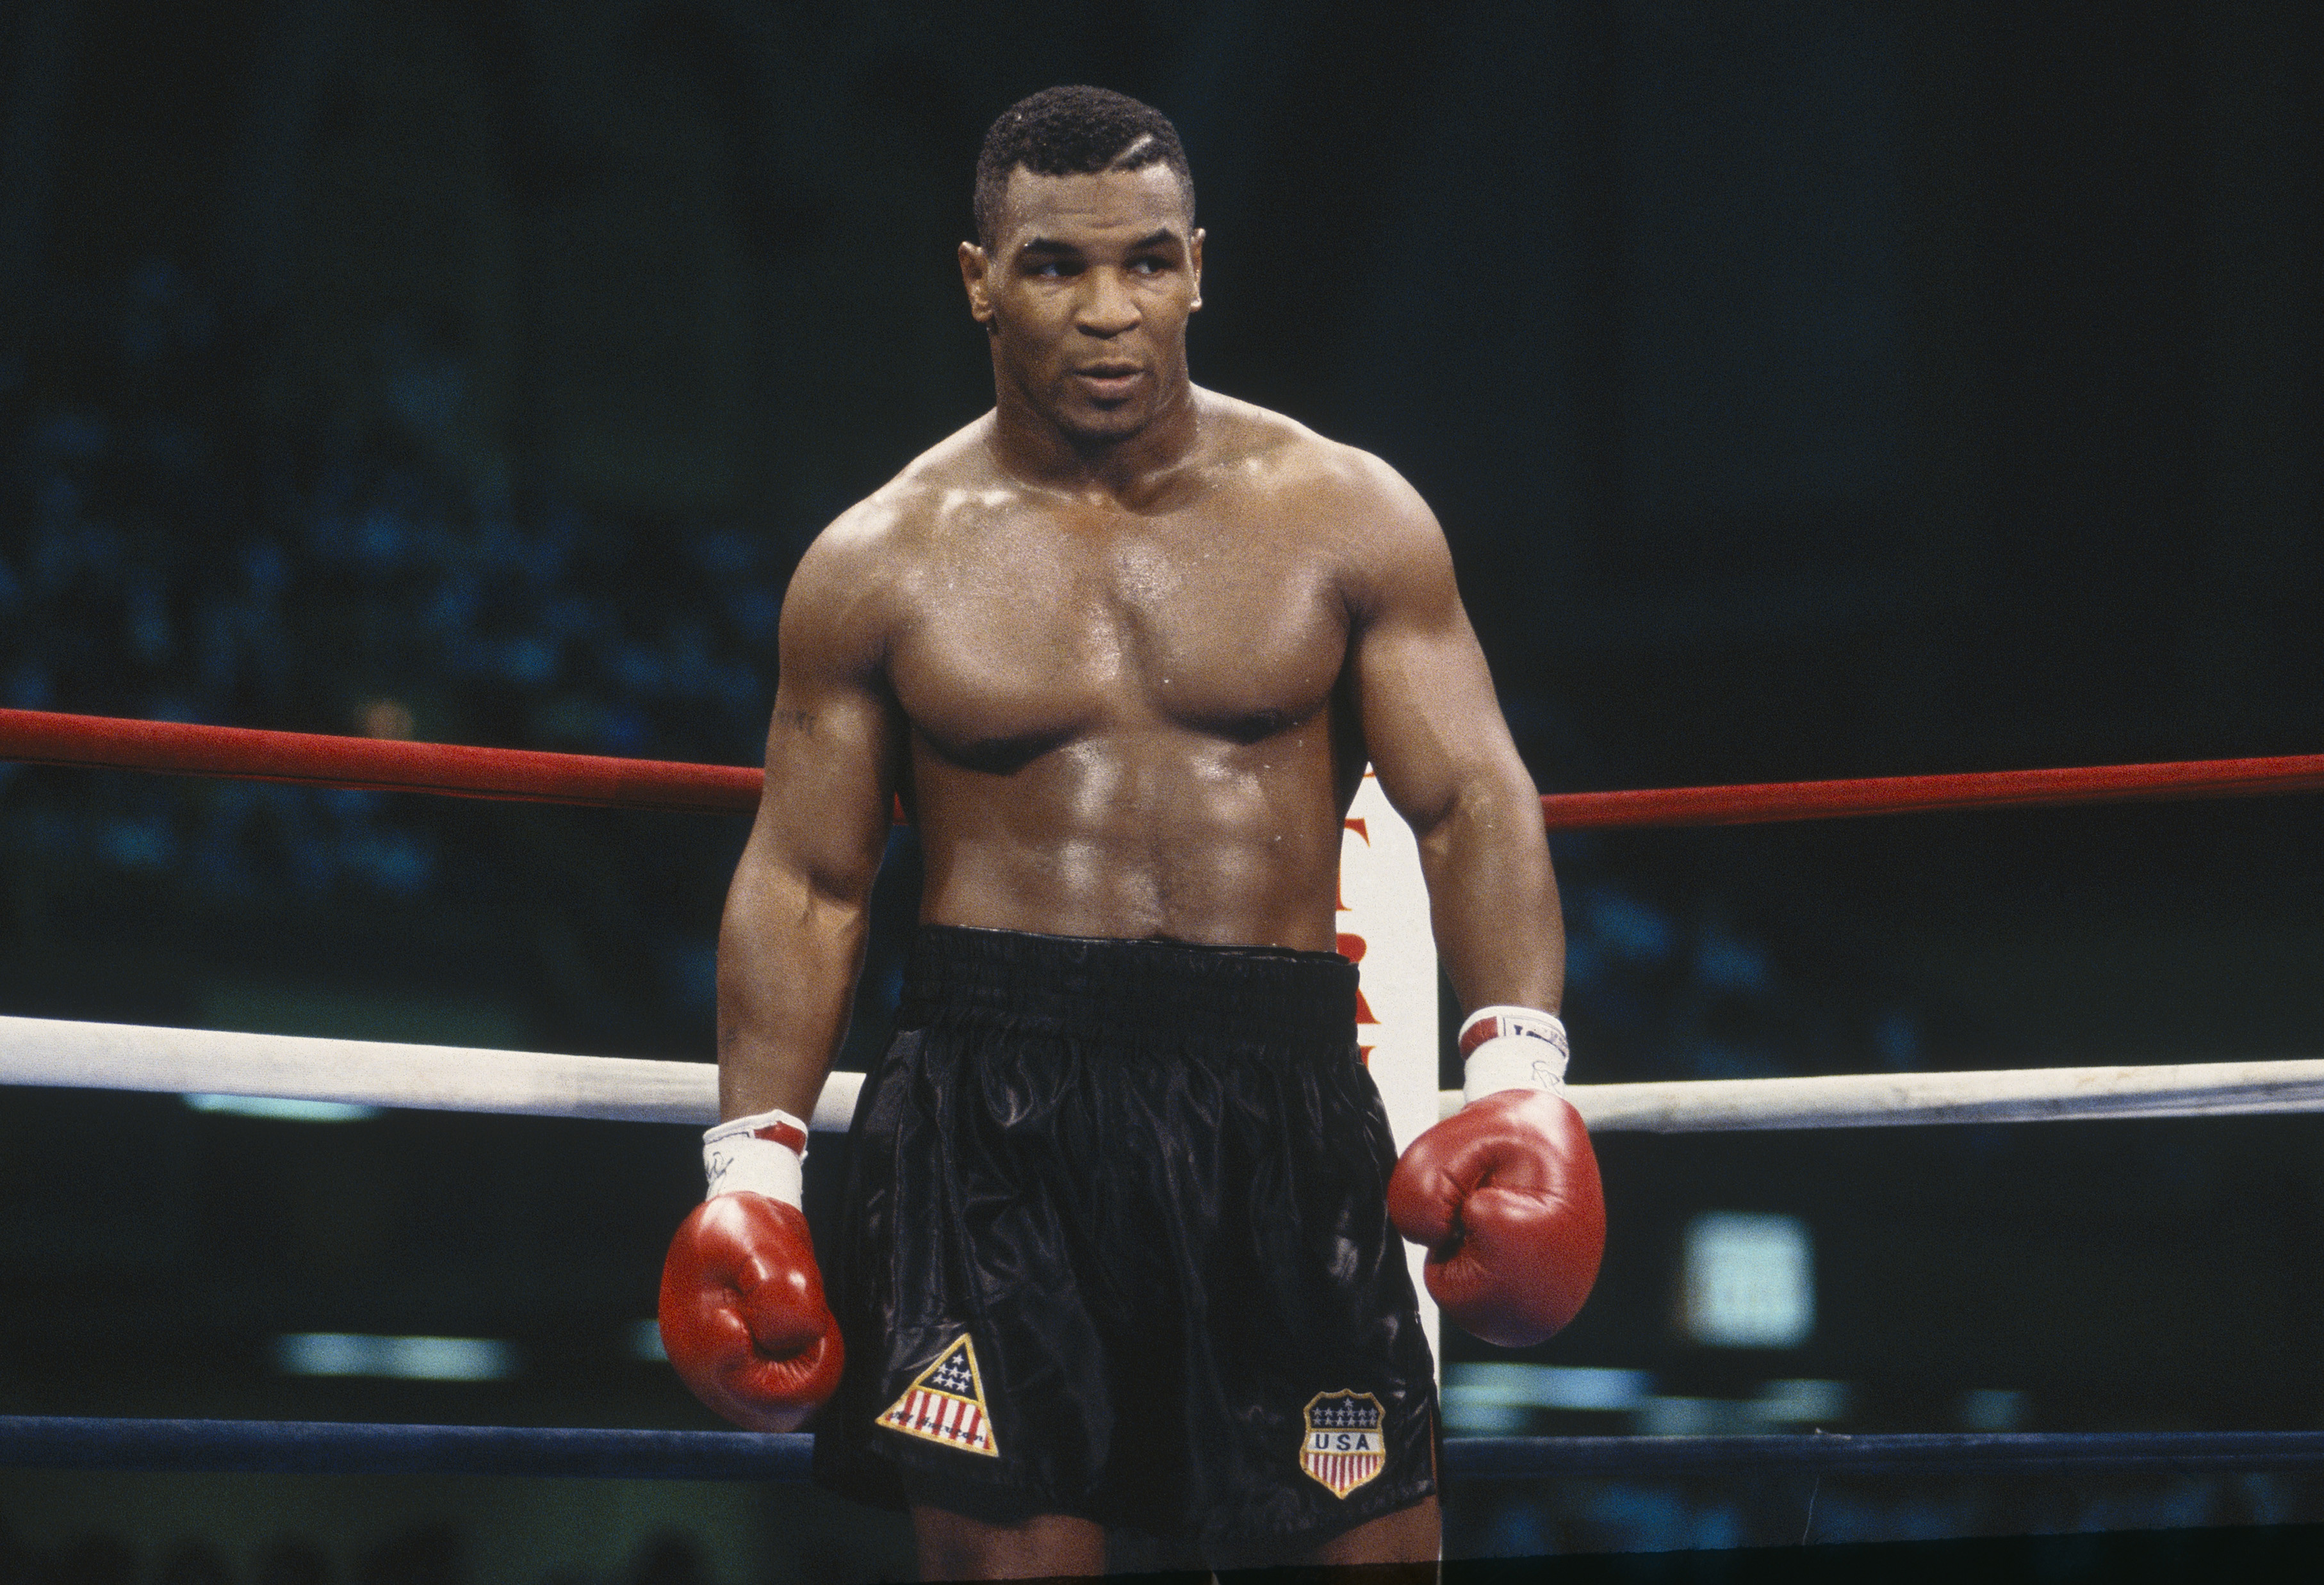 Mike Tyson was known as the 'Baddest Man on the Planet'